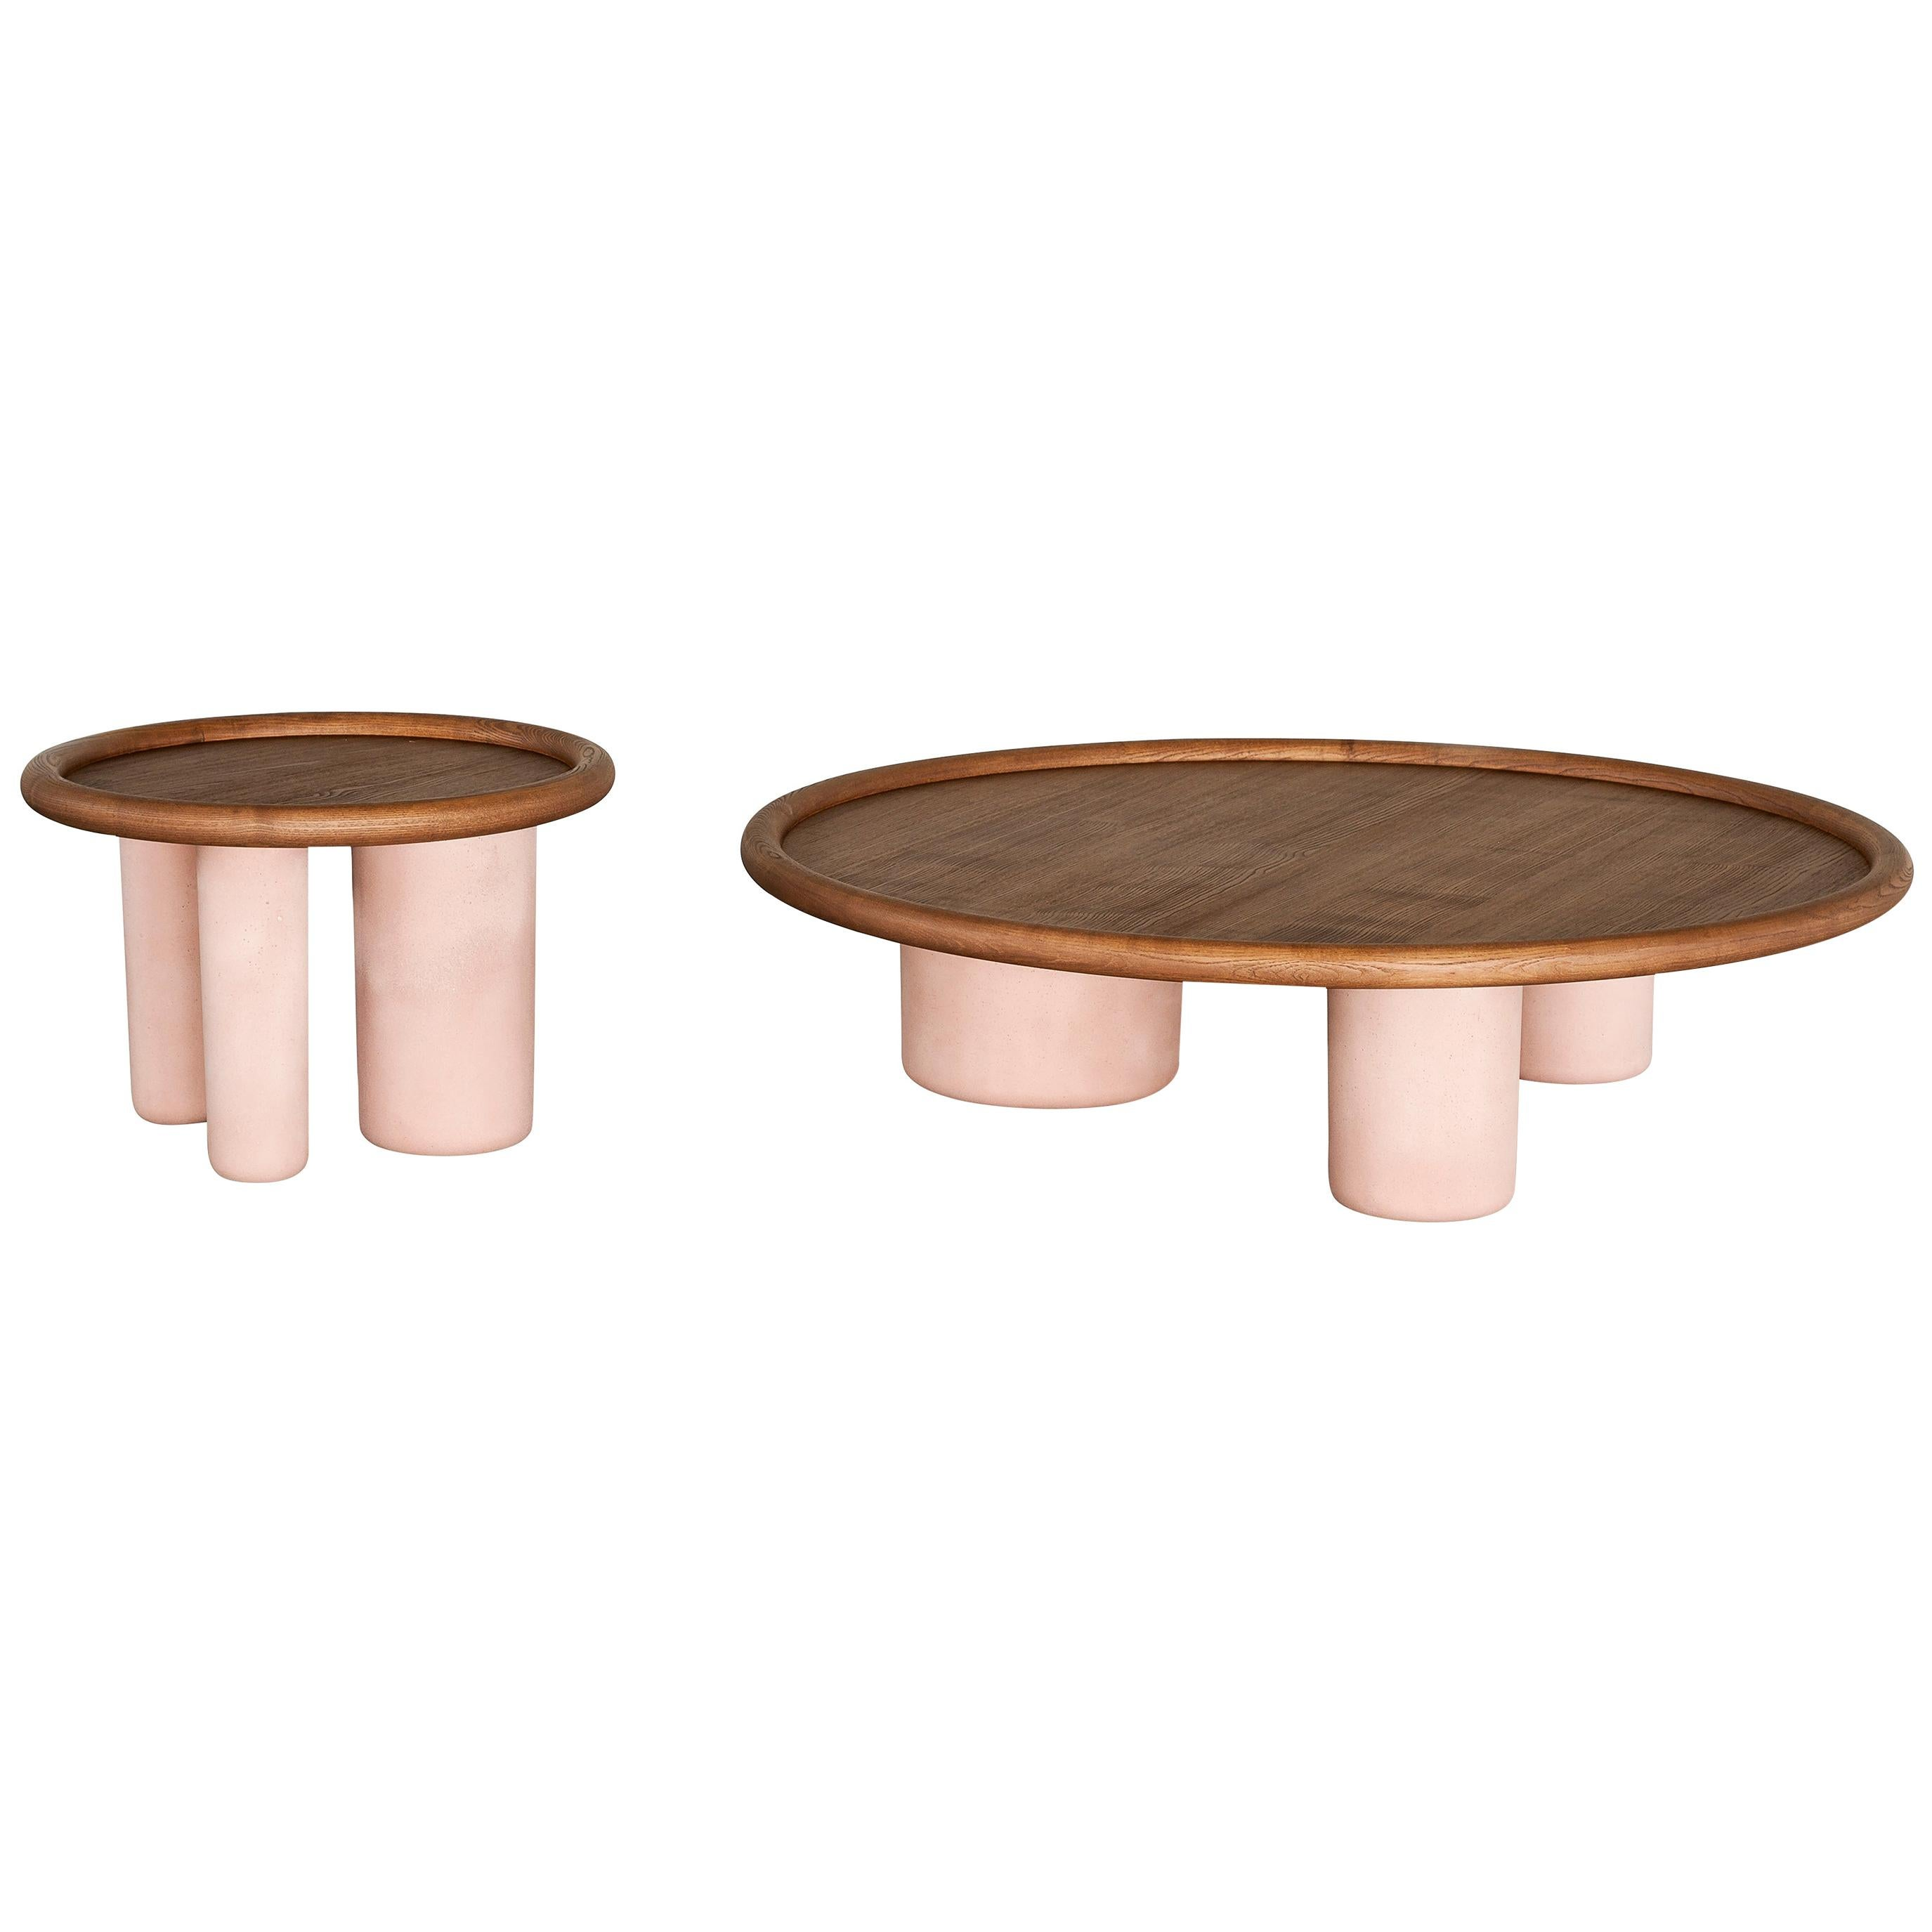 Tacchini Pluto Small Low Table In Pink Cement with Walnut Top by Studiopepe